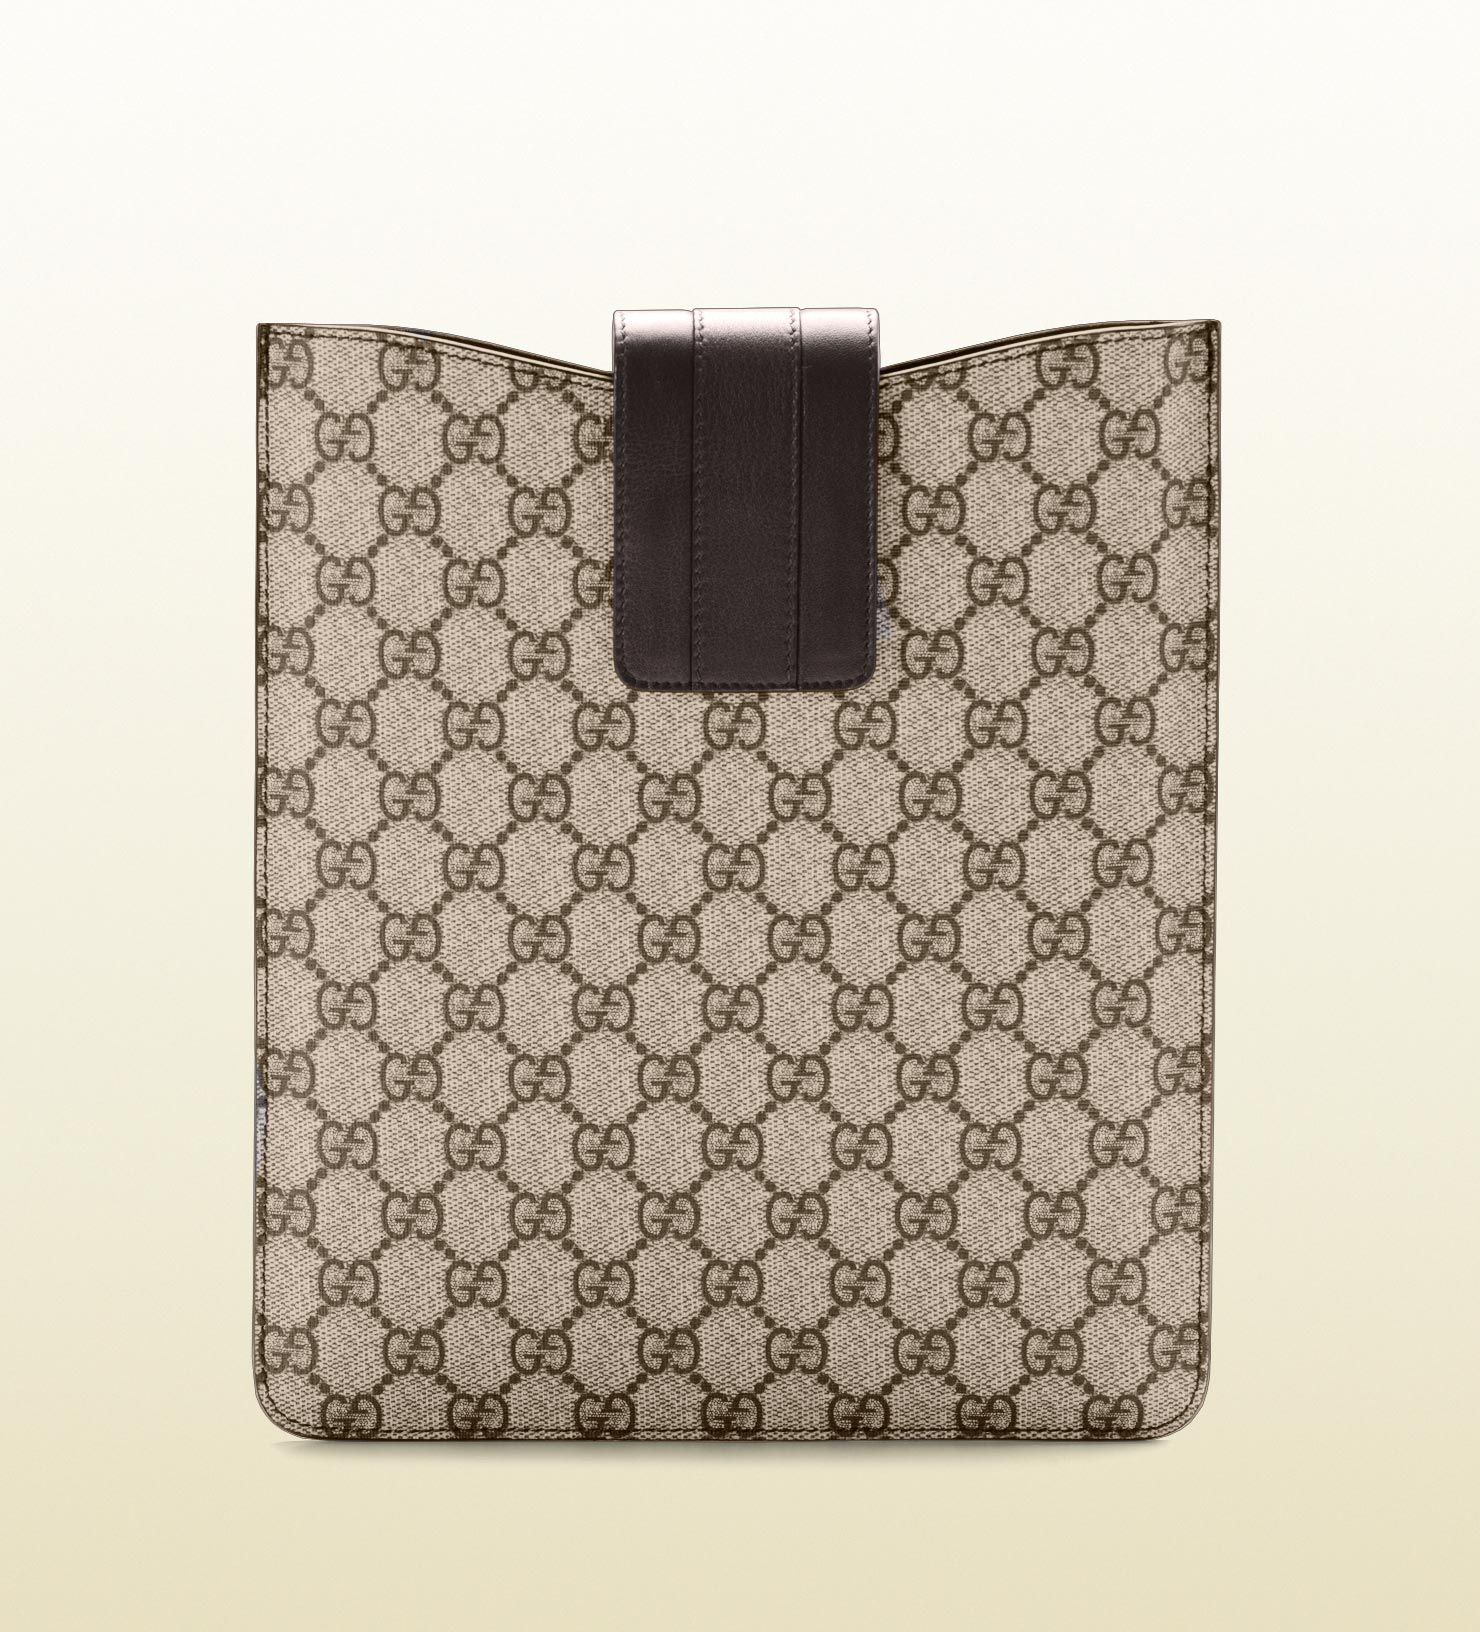 dc51277c0d0 Gucci - iPad case. Gucci - iPad case Mini Bag